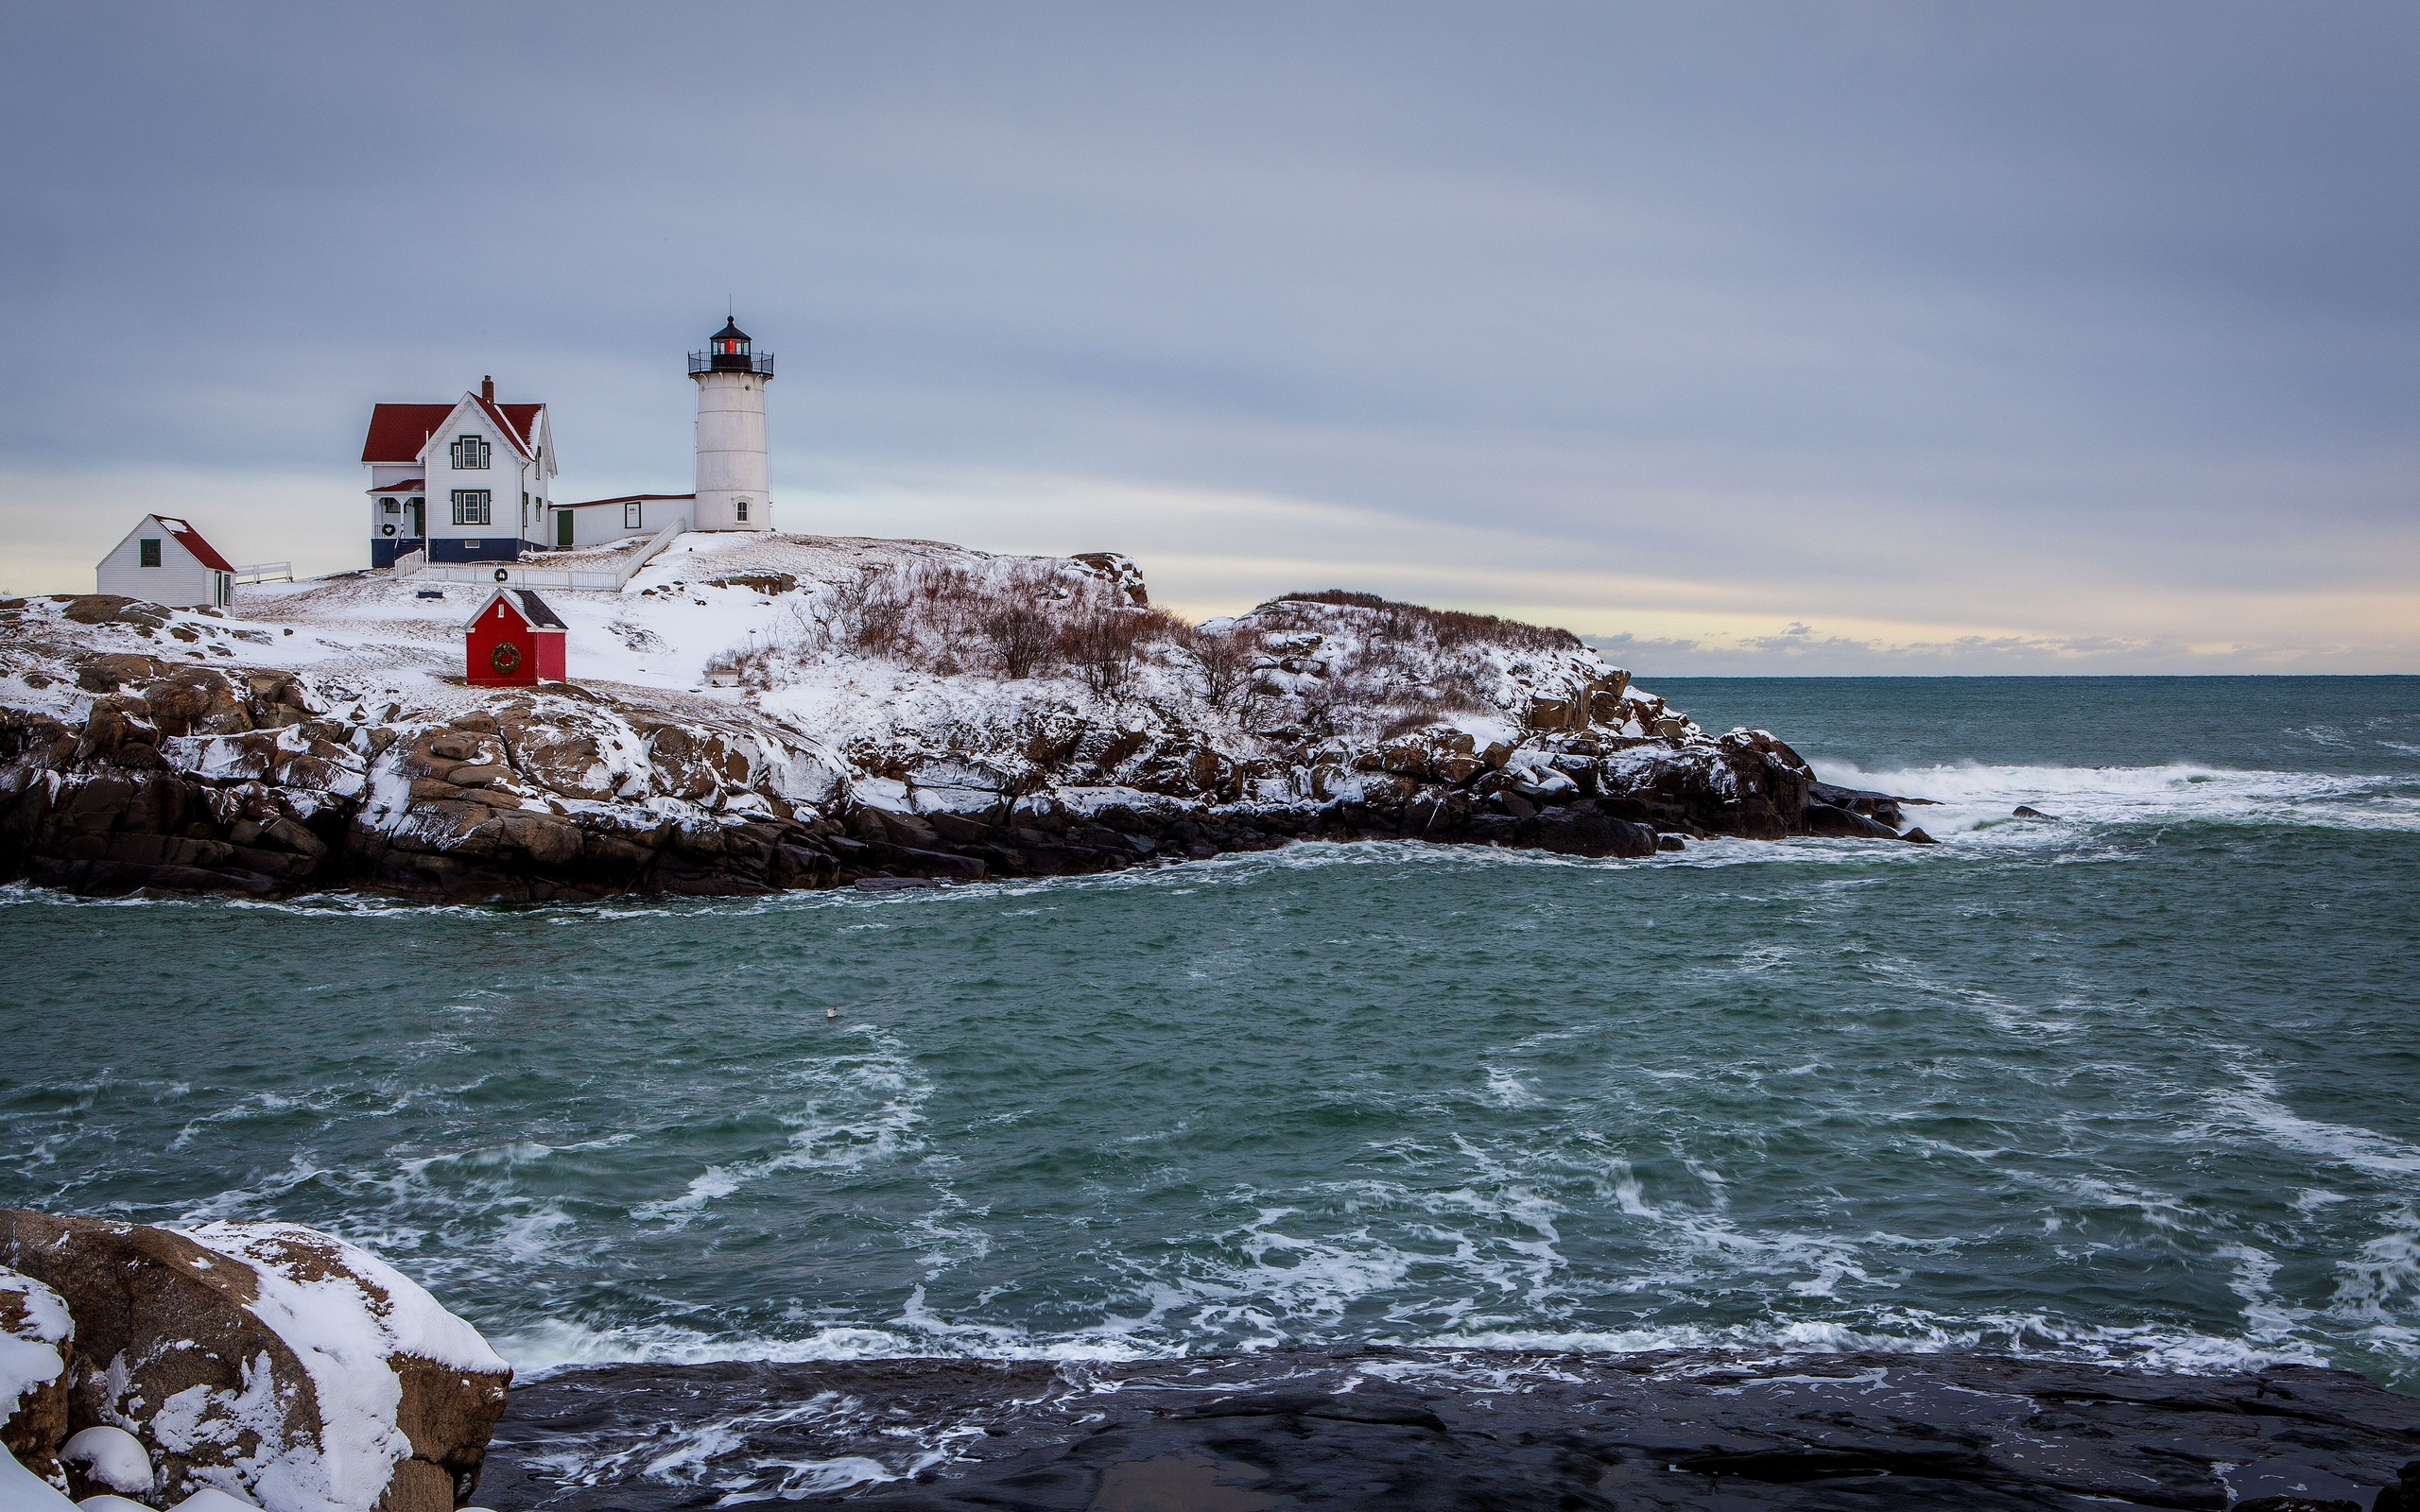 winter the sea the rocky coast the lighthouse landscape wallpaper 2560x1600